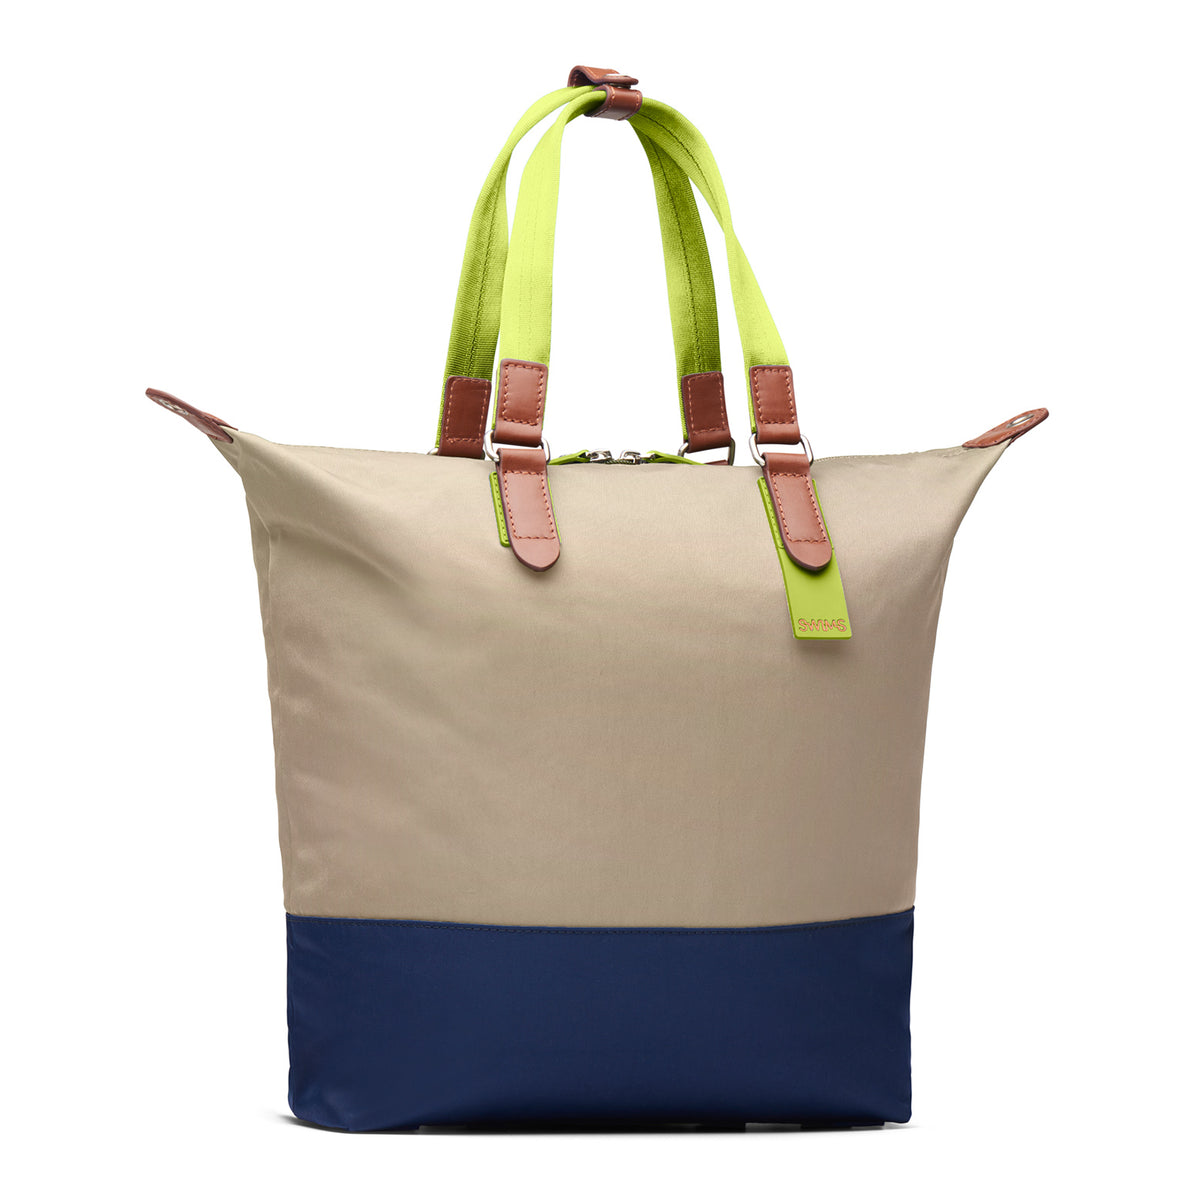 Tote - background::white,variant::Gaucho